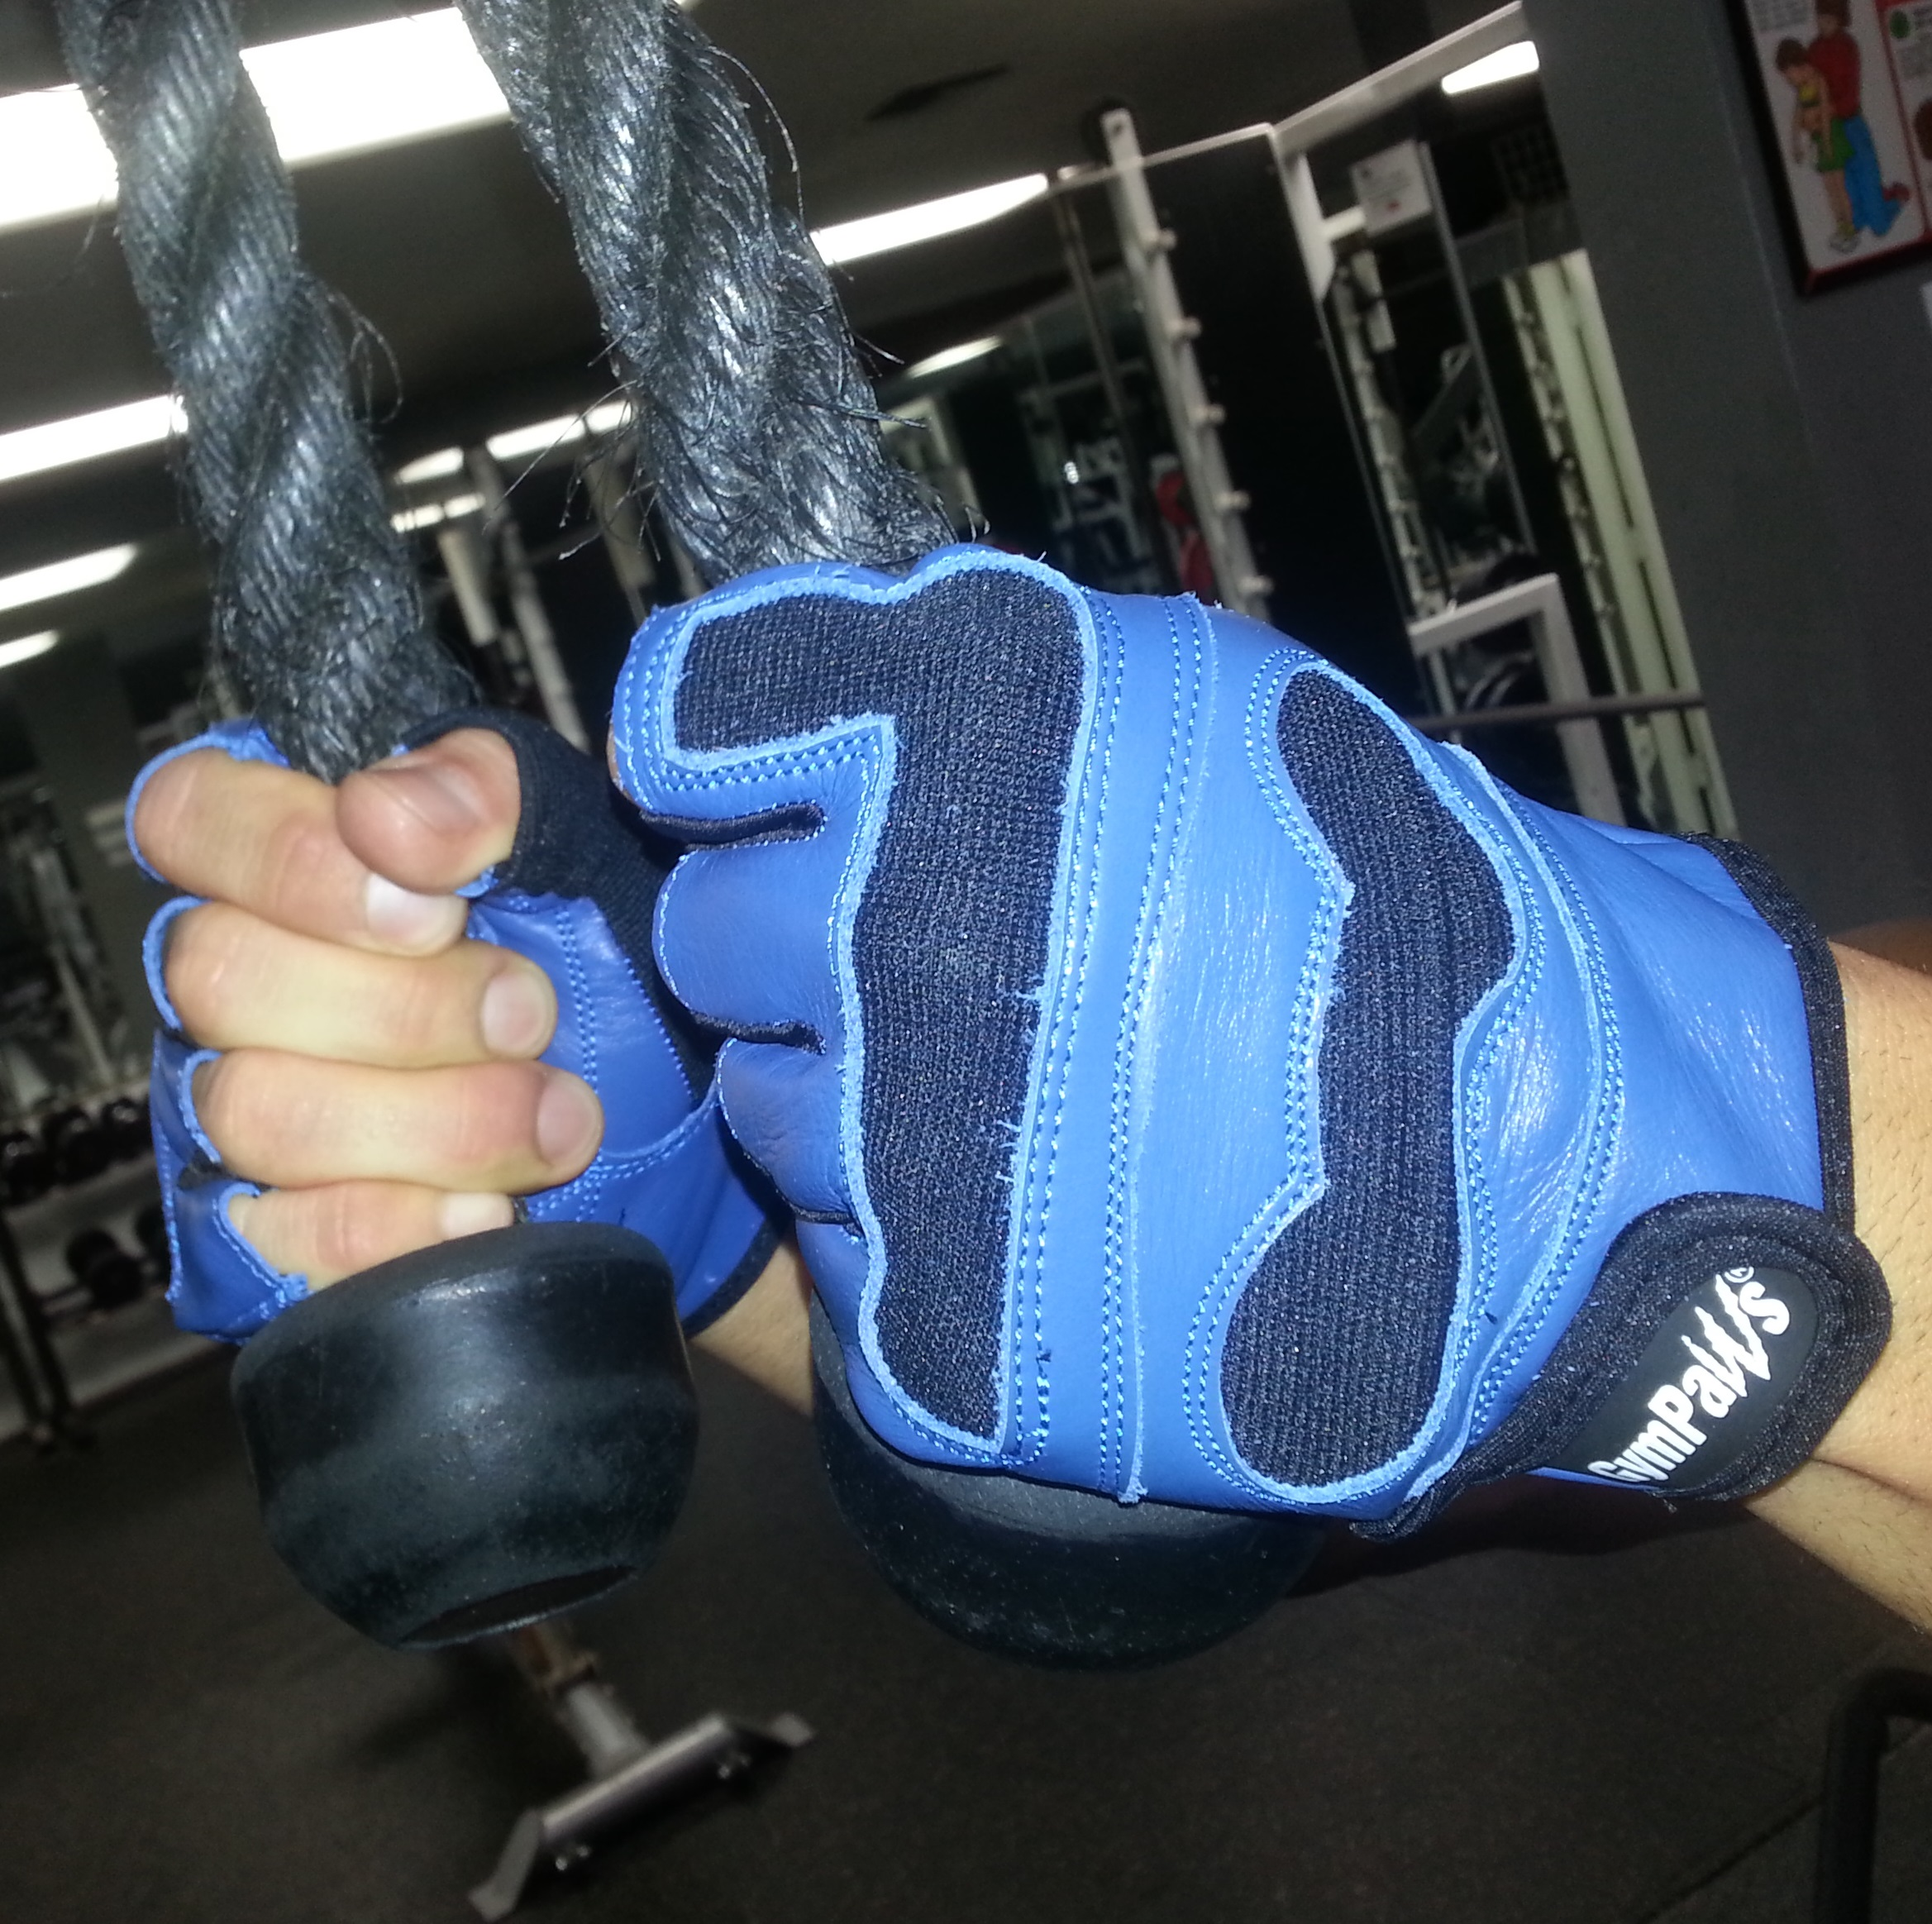 Personalized Fitness Gloves: The Swolemate Gym Glove